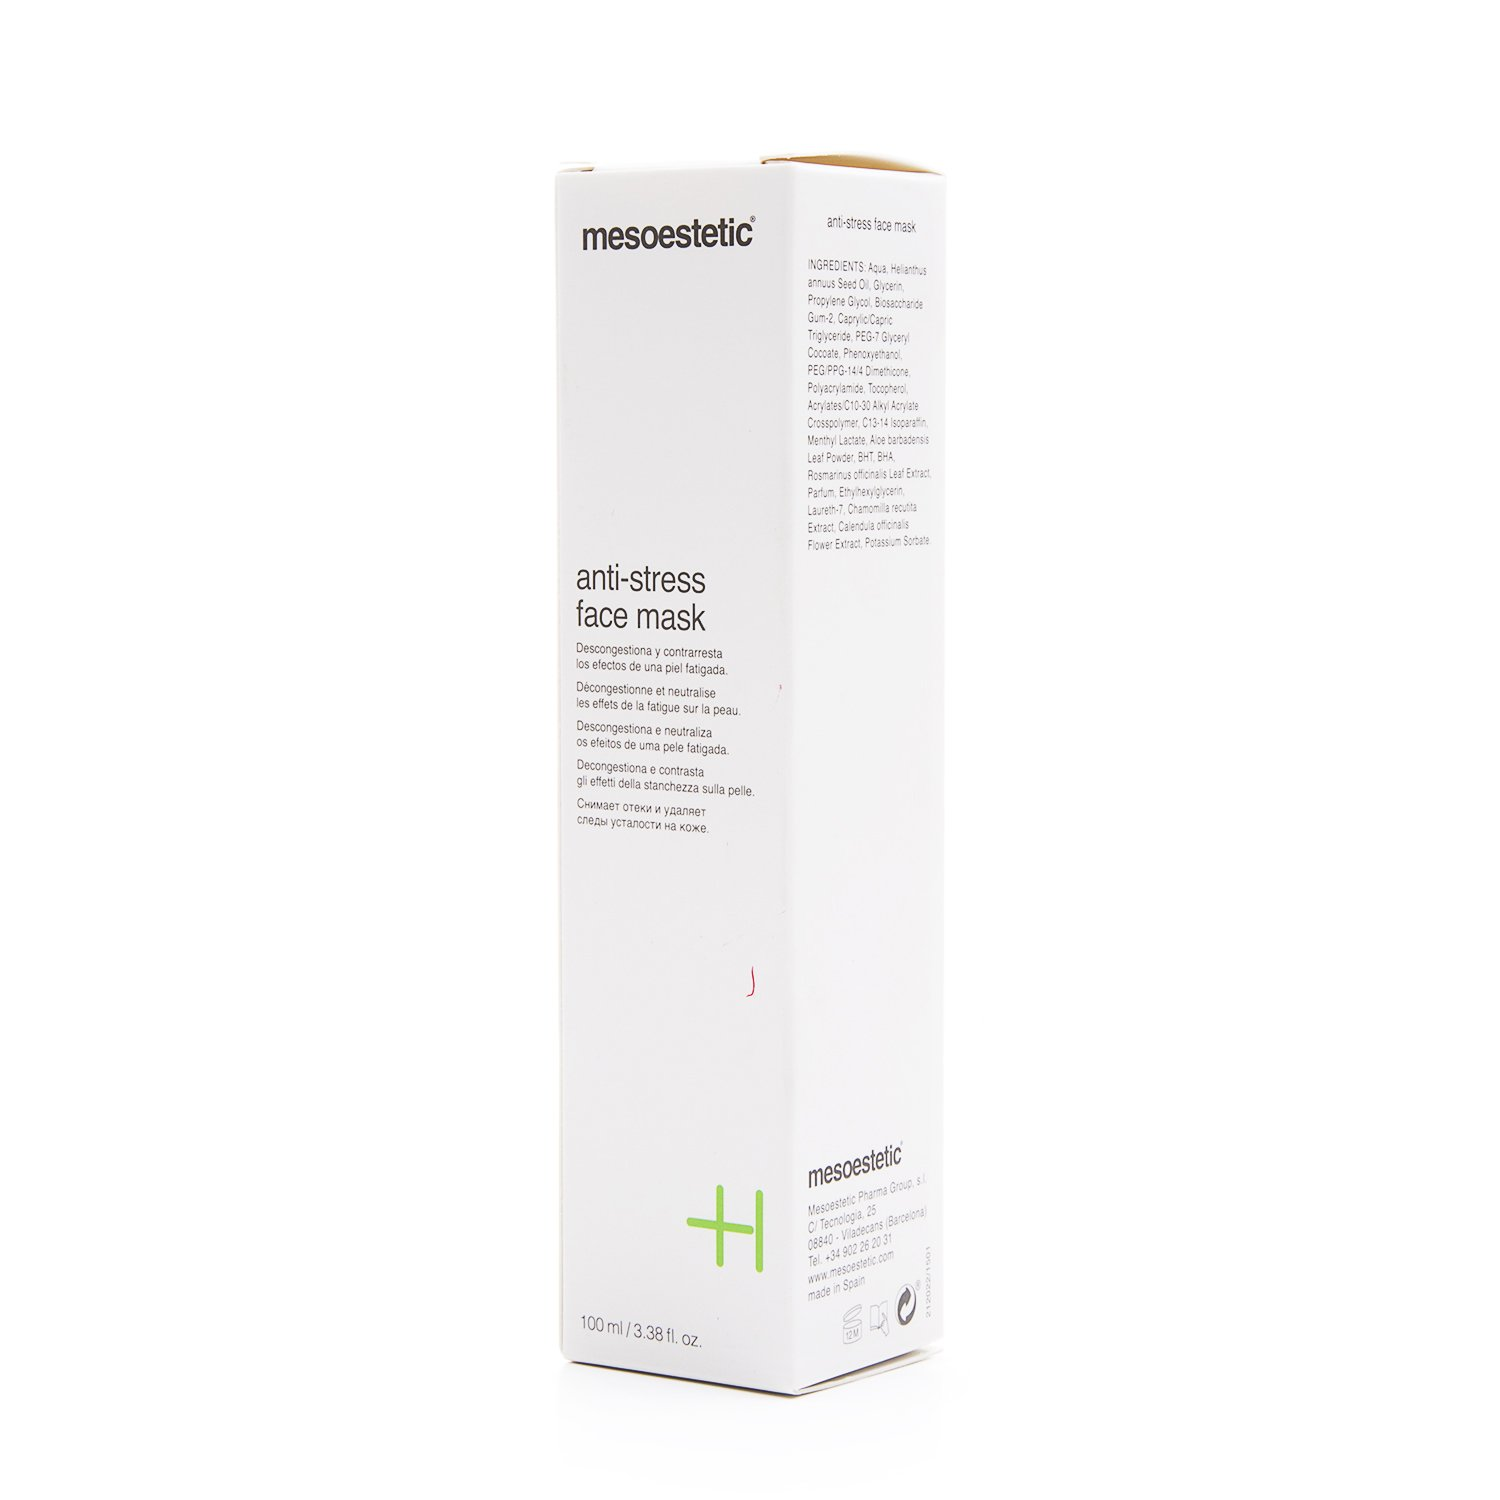 Mesoestetic Cosmelan Anti-Stress Face Mask 3.38 fl oz.